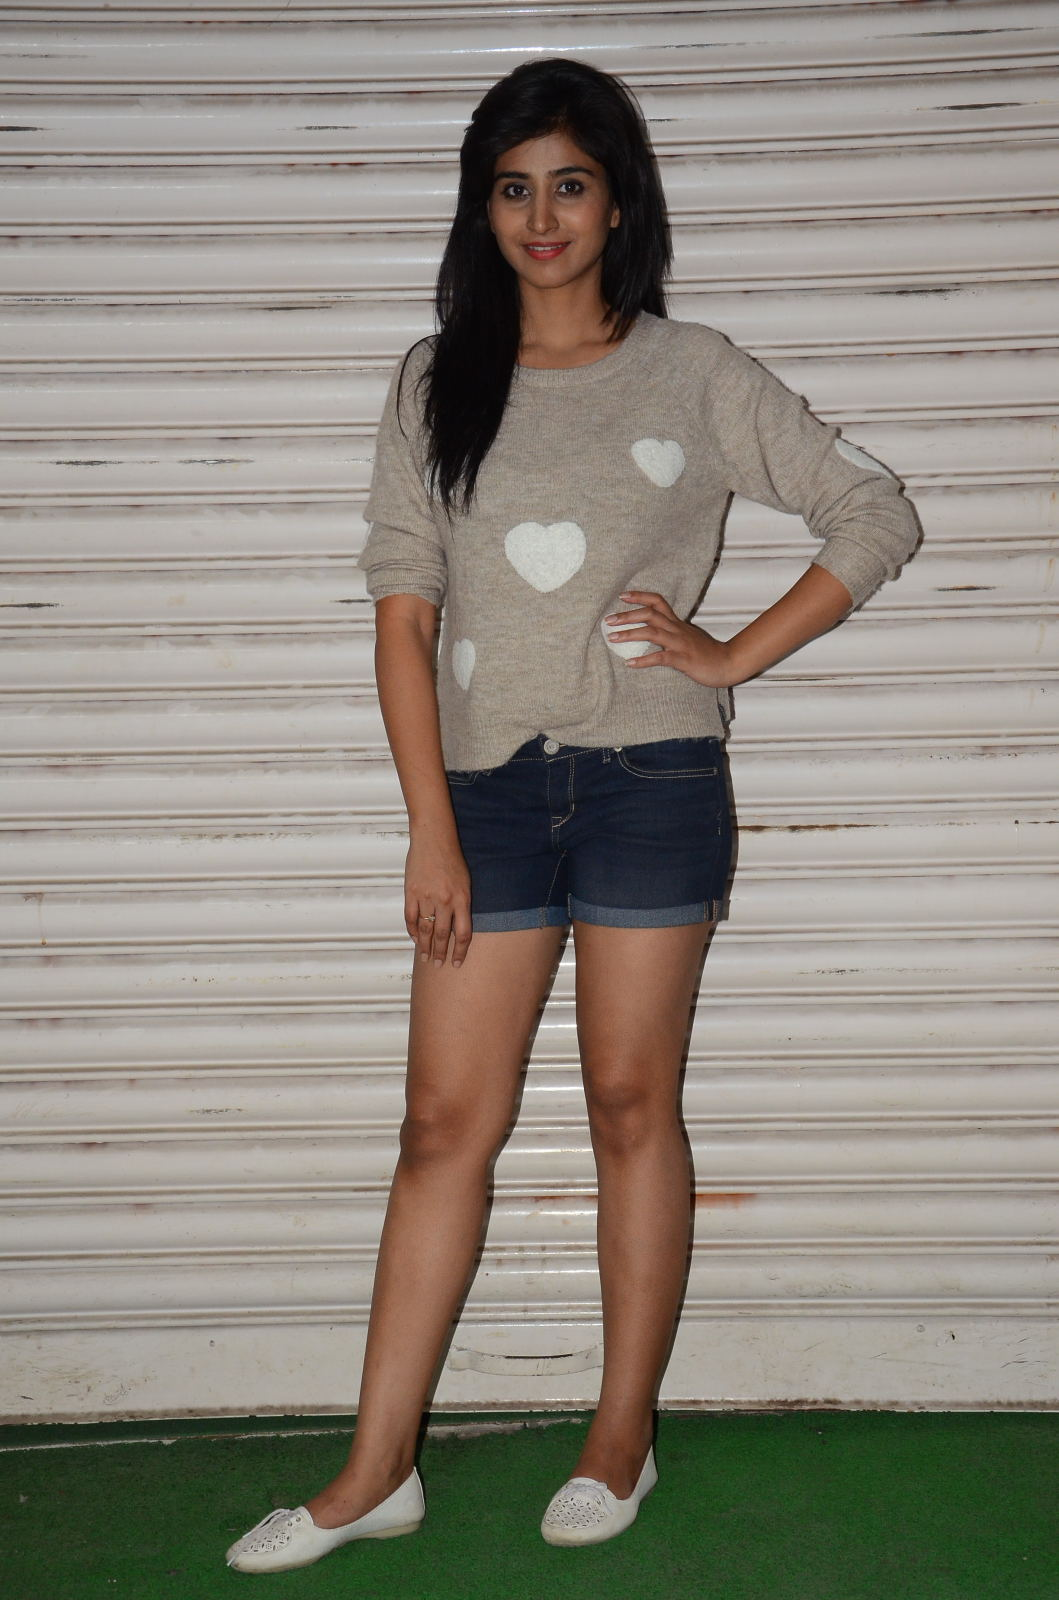 Shamili new cute photos gallery-HQ-Photo-14